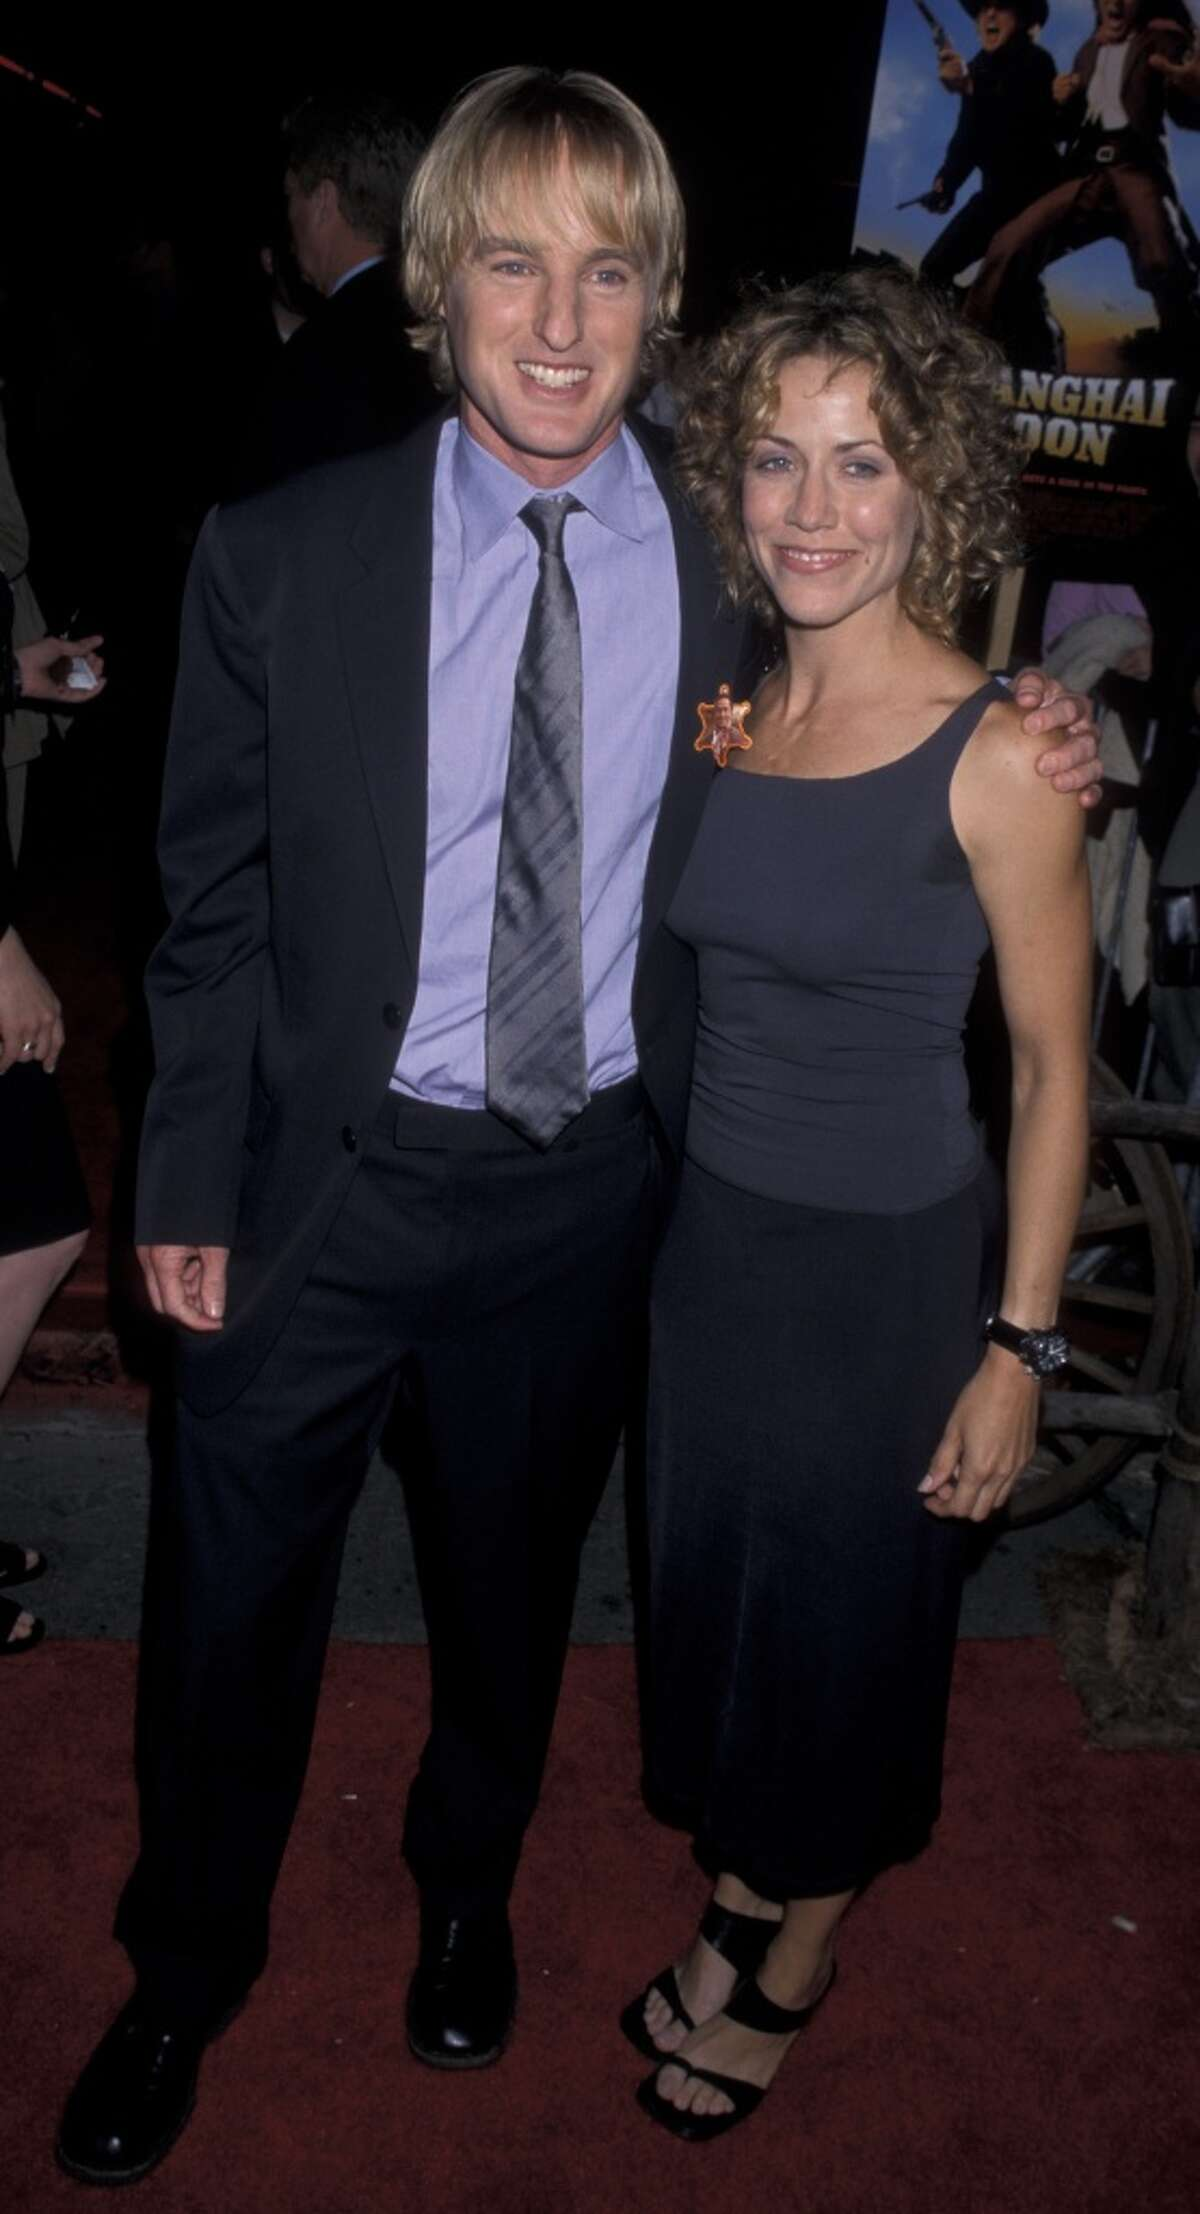 Owen Wilson and Sheryl Crow dated for three years in the late '90s/early 2000s. The song